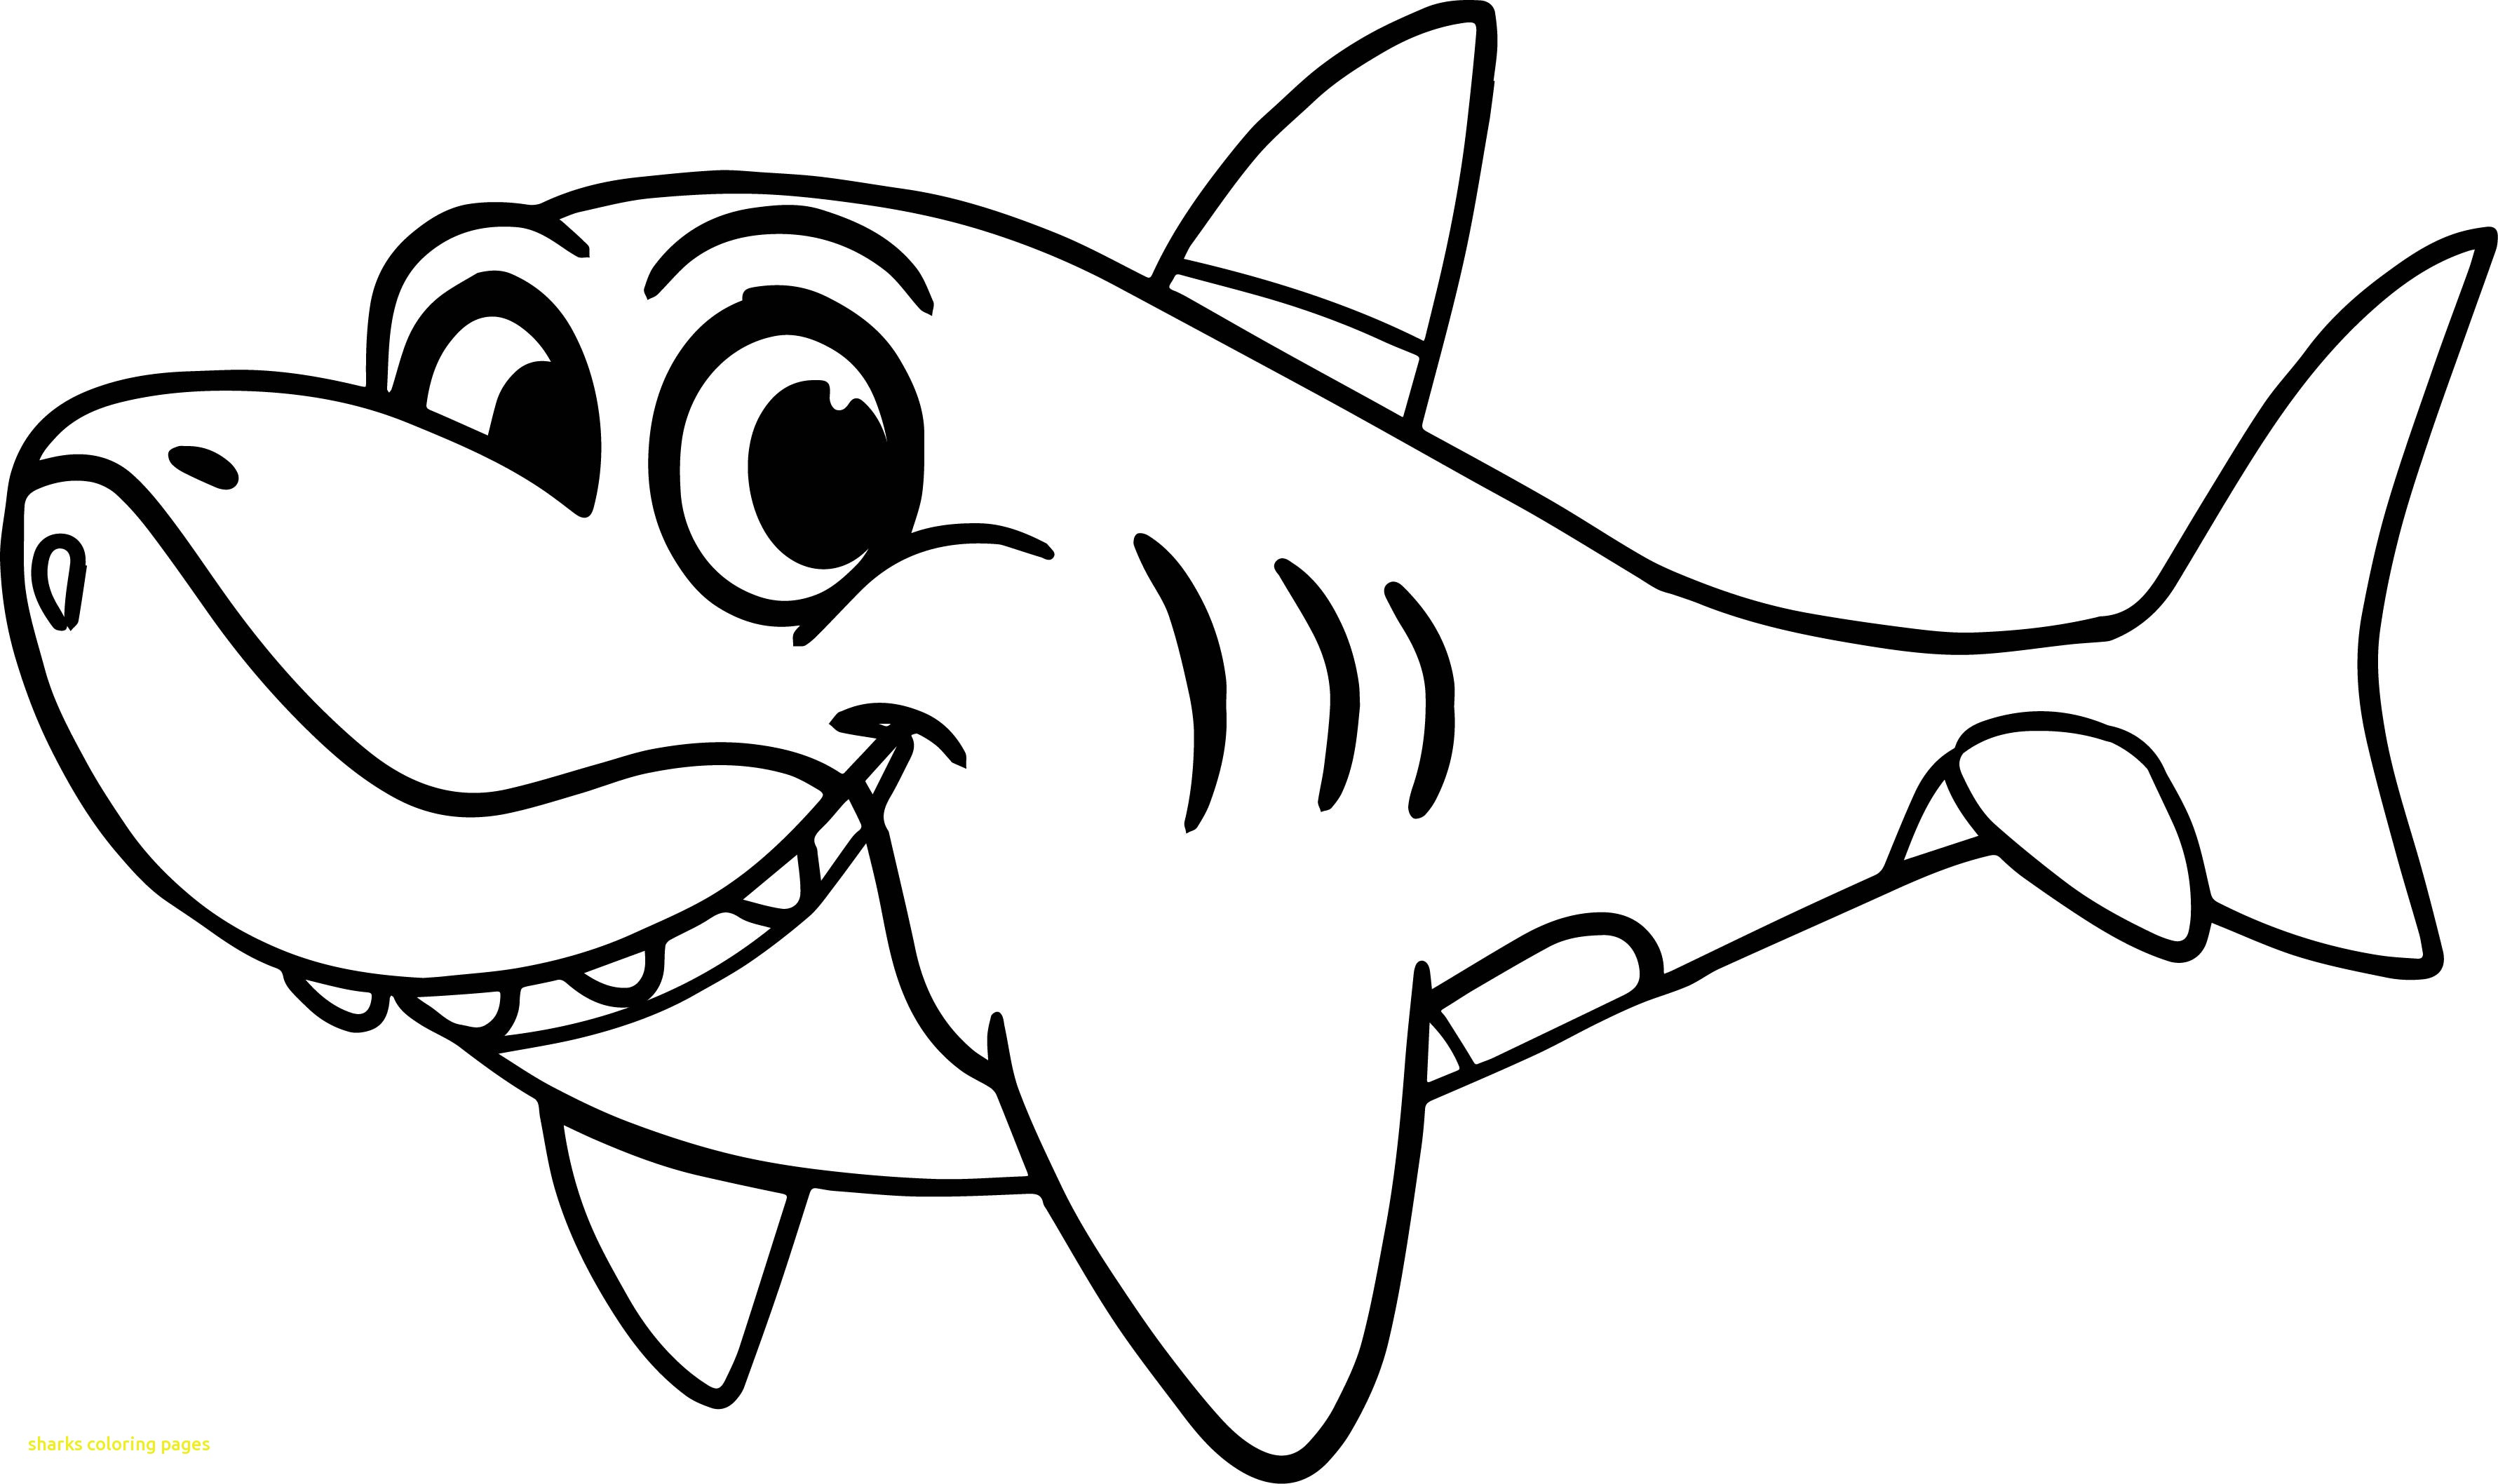 3562x2116 Sharks Coloring Pages With Morphle Cartoon My Cute Shark Page